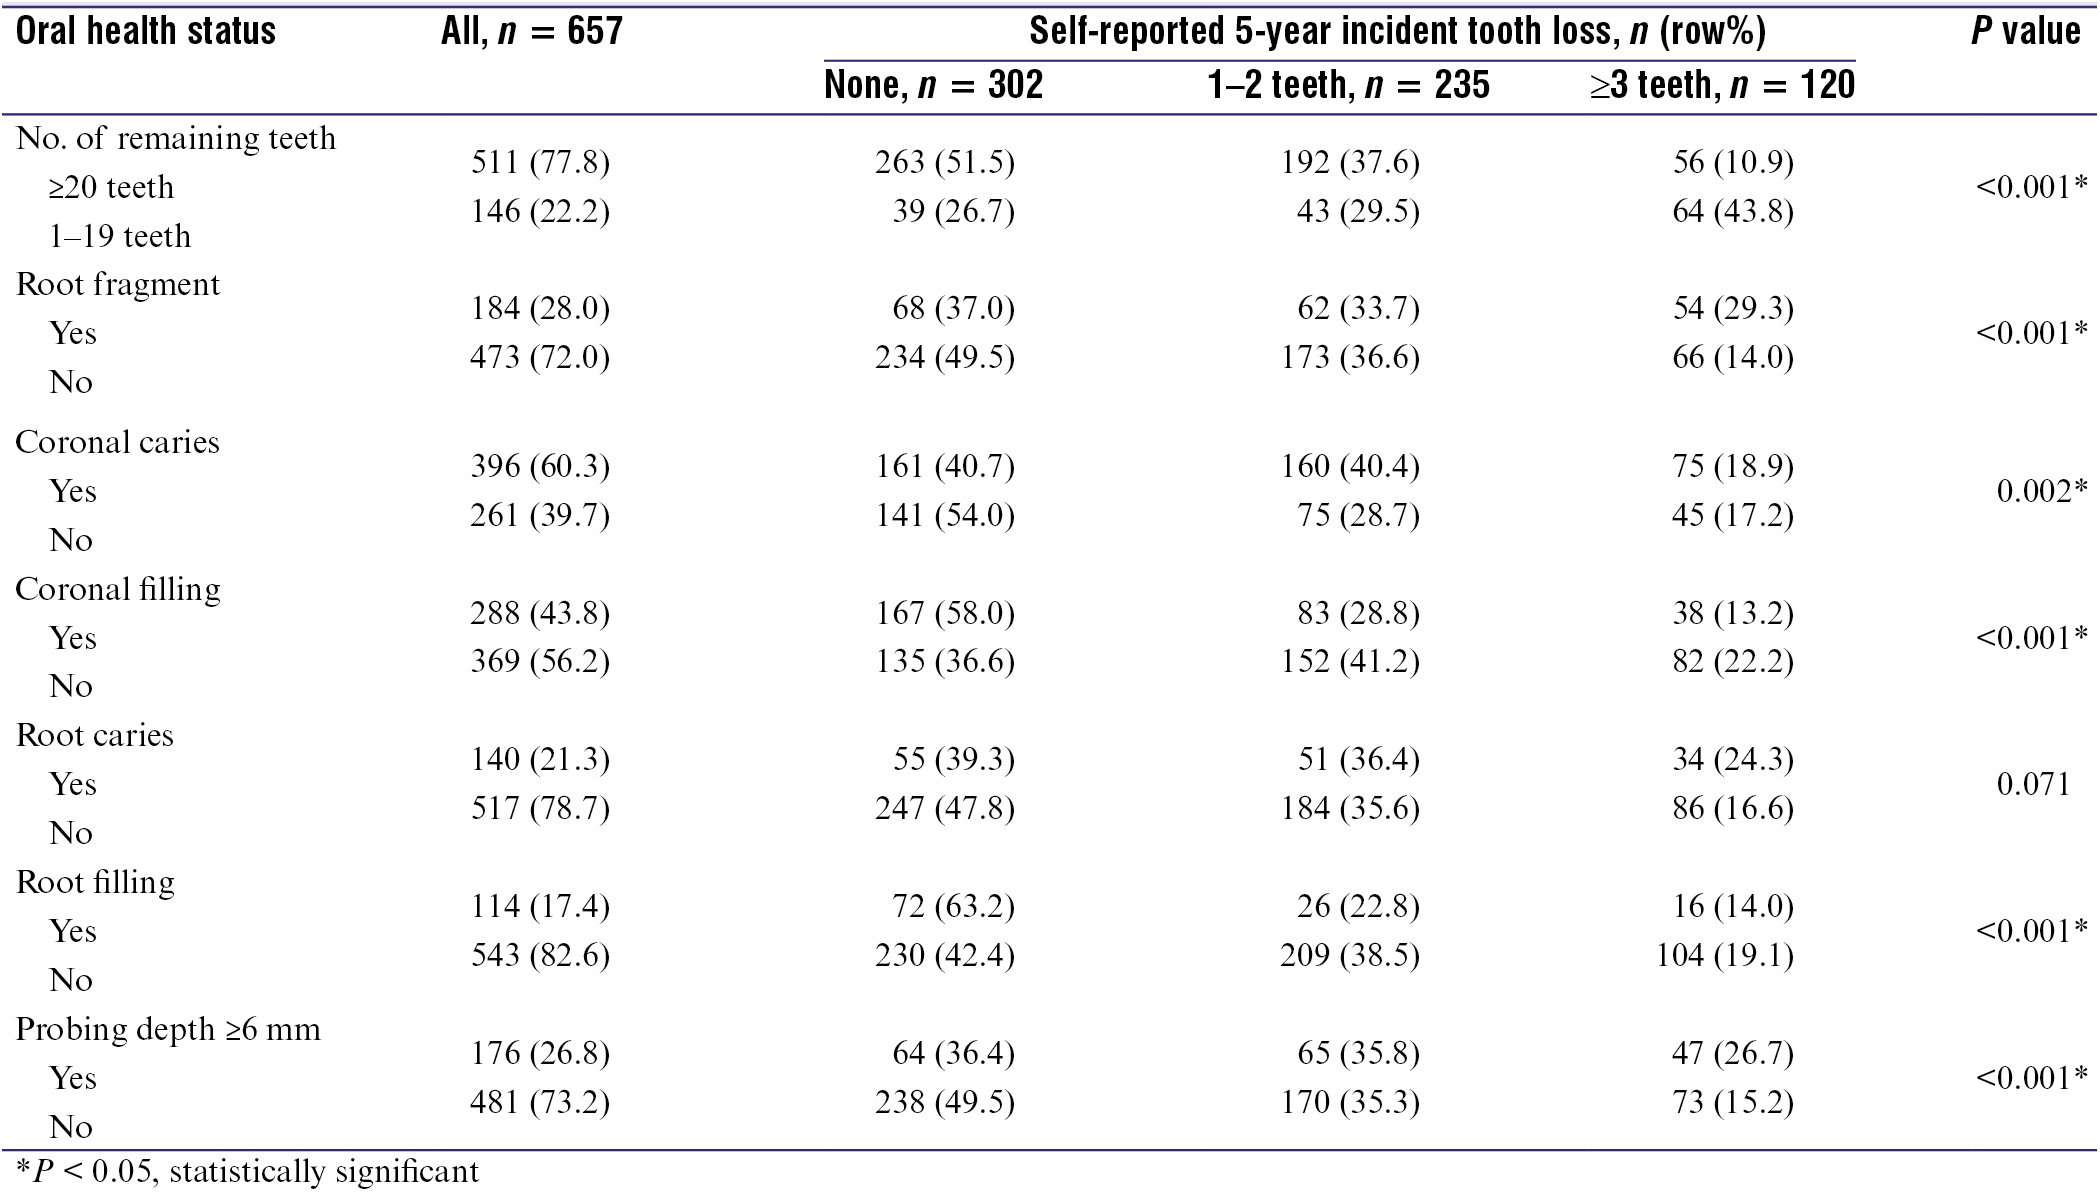 Table 2: Associations of oral health status with self-reported five-year incident tooth loss (<i>n</i> = 657)